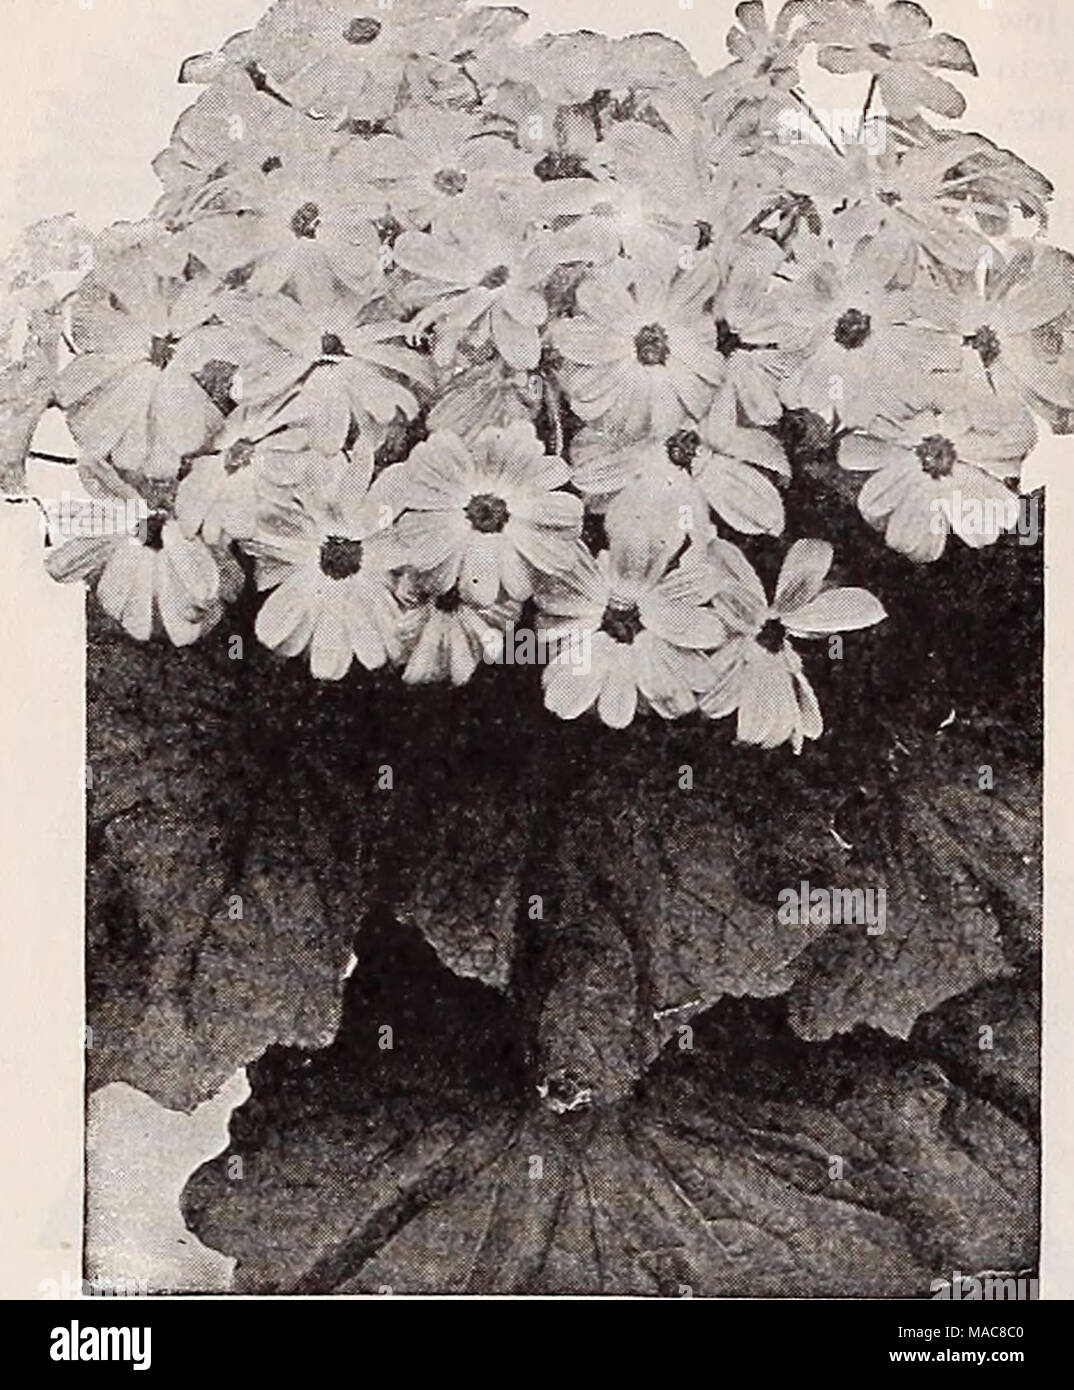 Dreers midsummer list 1932 dreers prize dwarf cineraria per a very pretty dwarf white leaved edging plant bearing small white flowers hardy perennial mightylinksfo